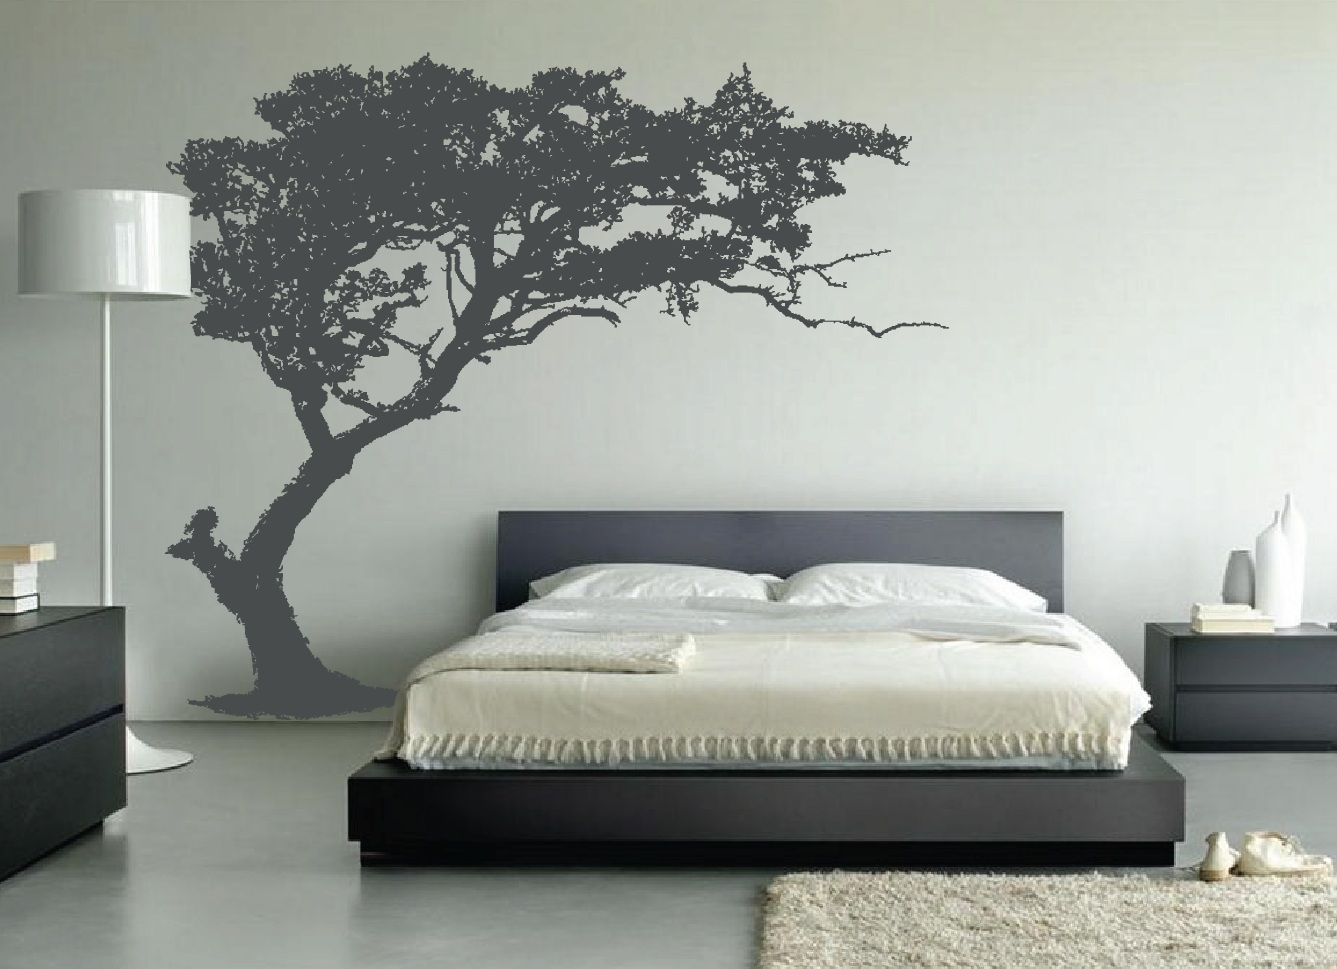 Stunning Wall Decal Bedroom Decor 1337 x 969 · 232 kB · jpeg